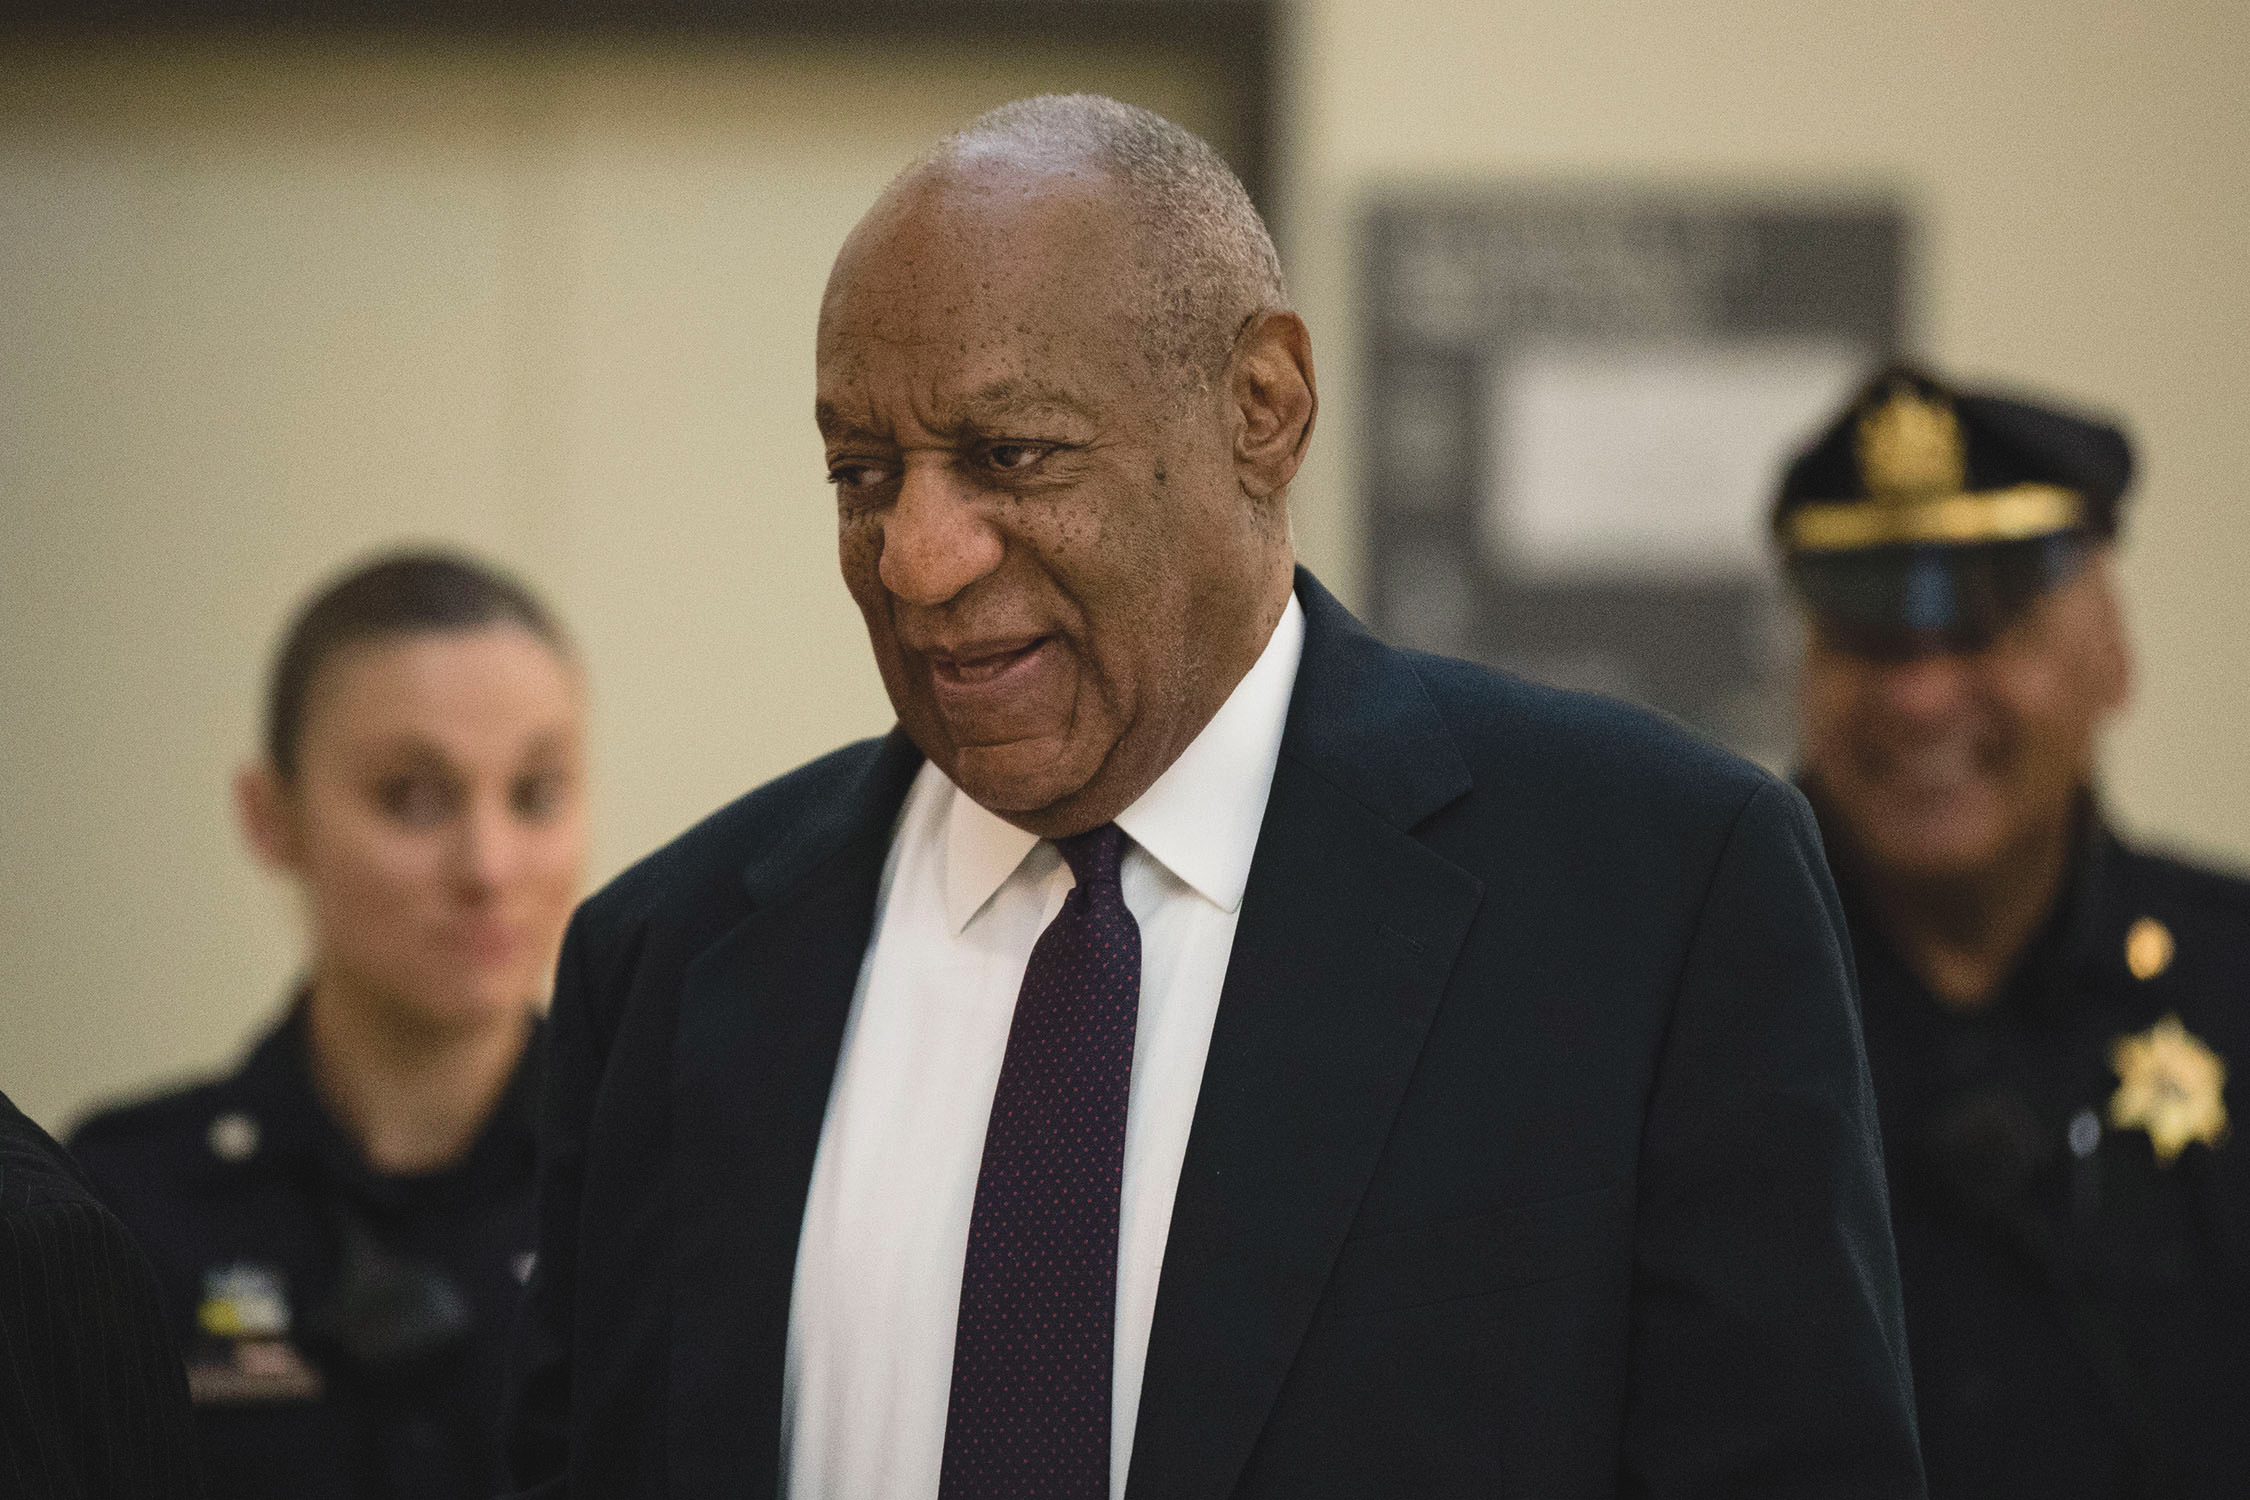 Cosby is accused of drugging and sexually assaulting Andrea Constand at his home outside Philadelphia in 2004. (Pool Photo)